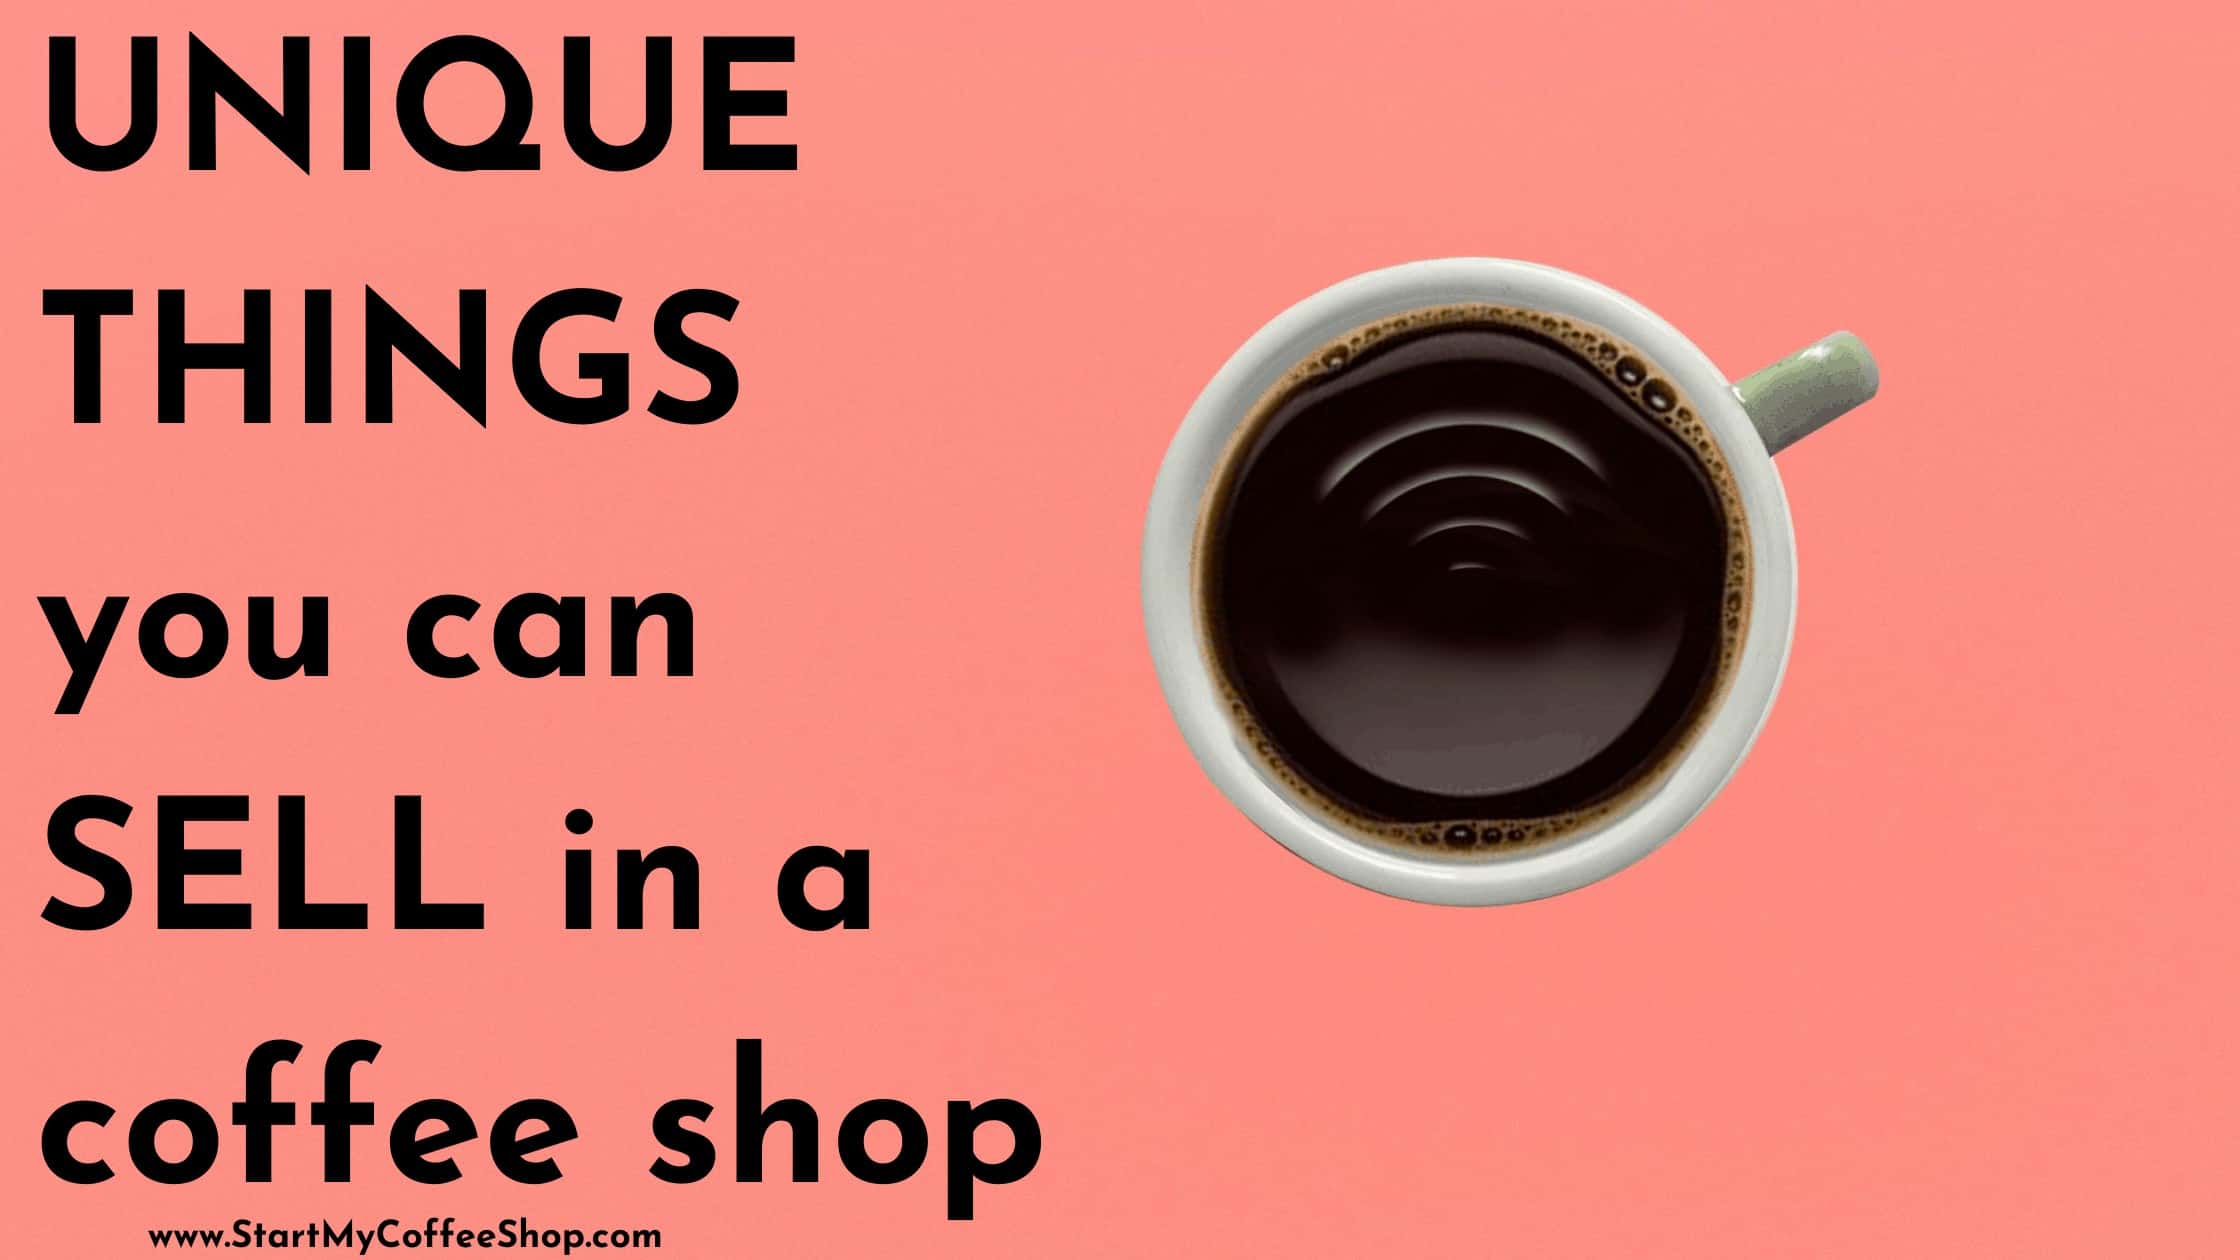 Unique Things You Can Sell in a Coffee Shop